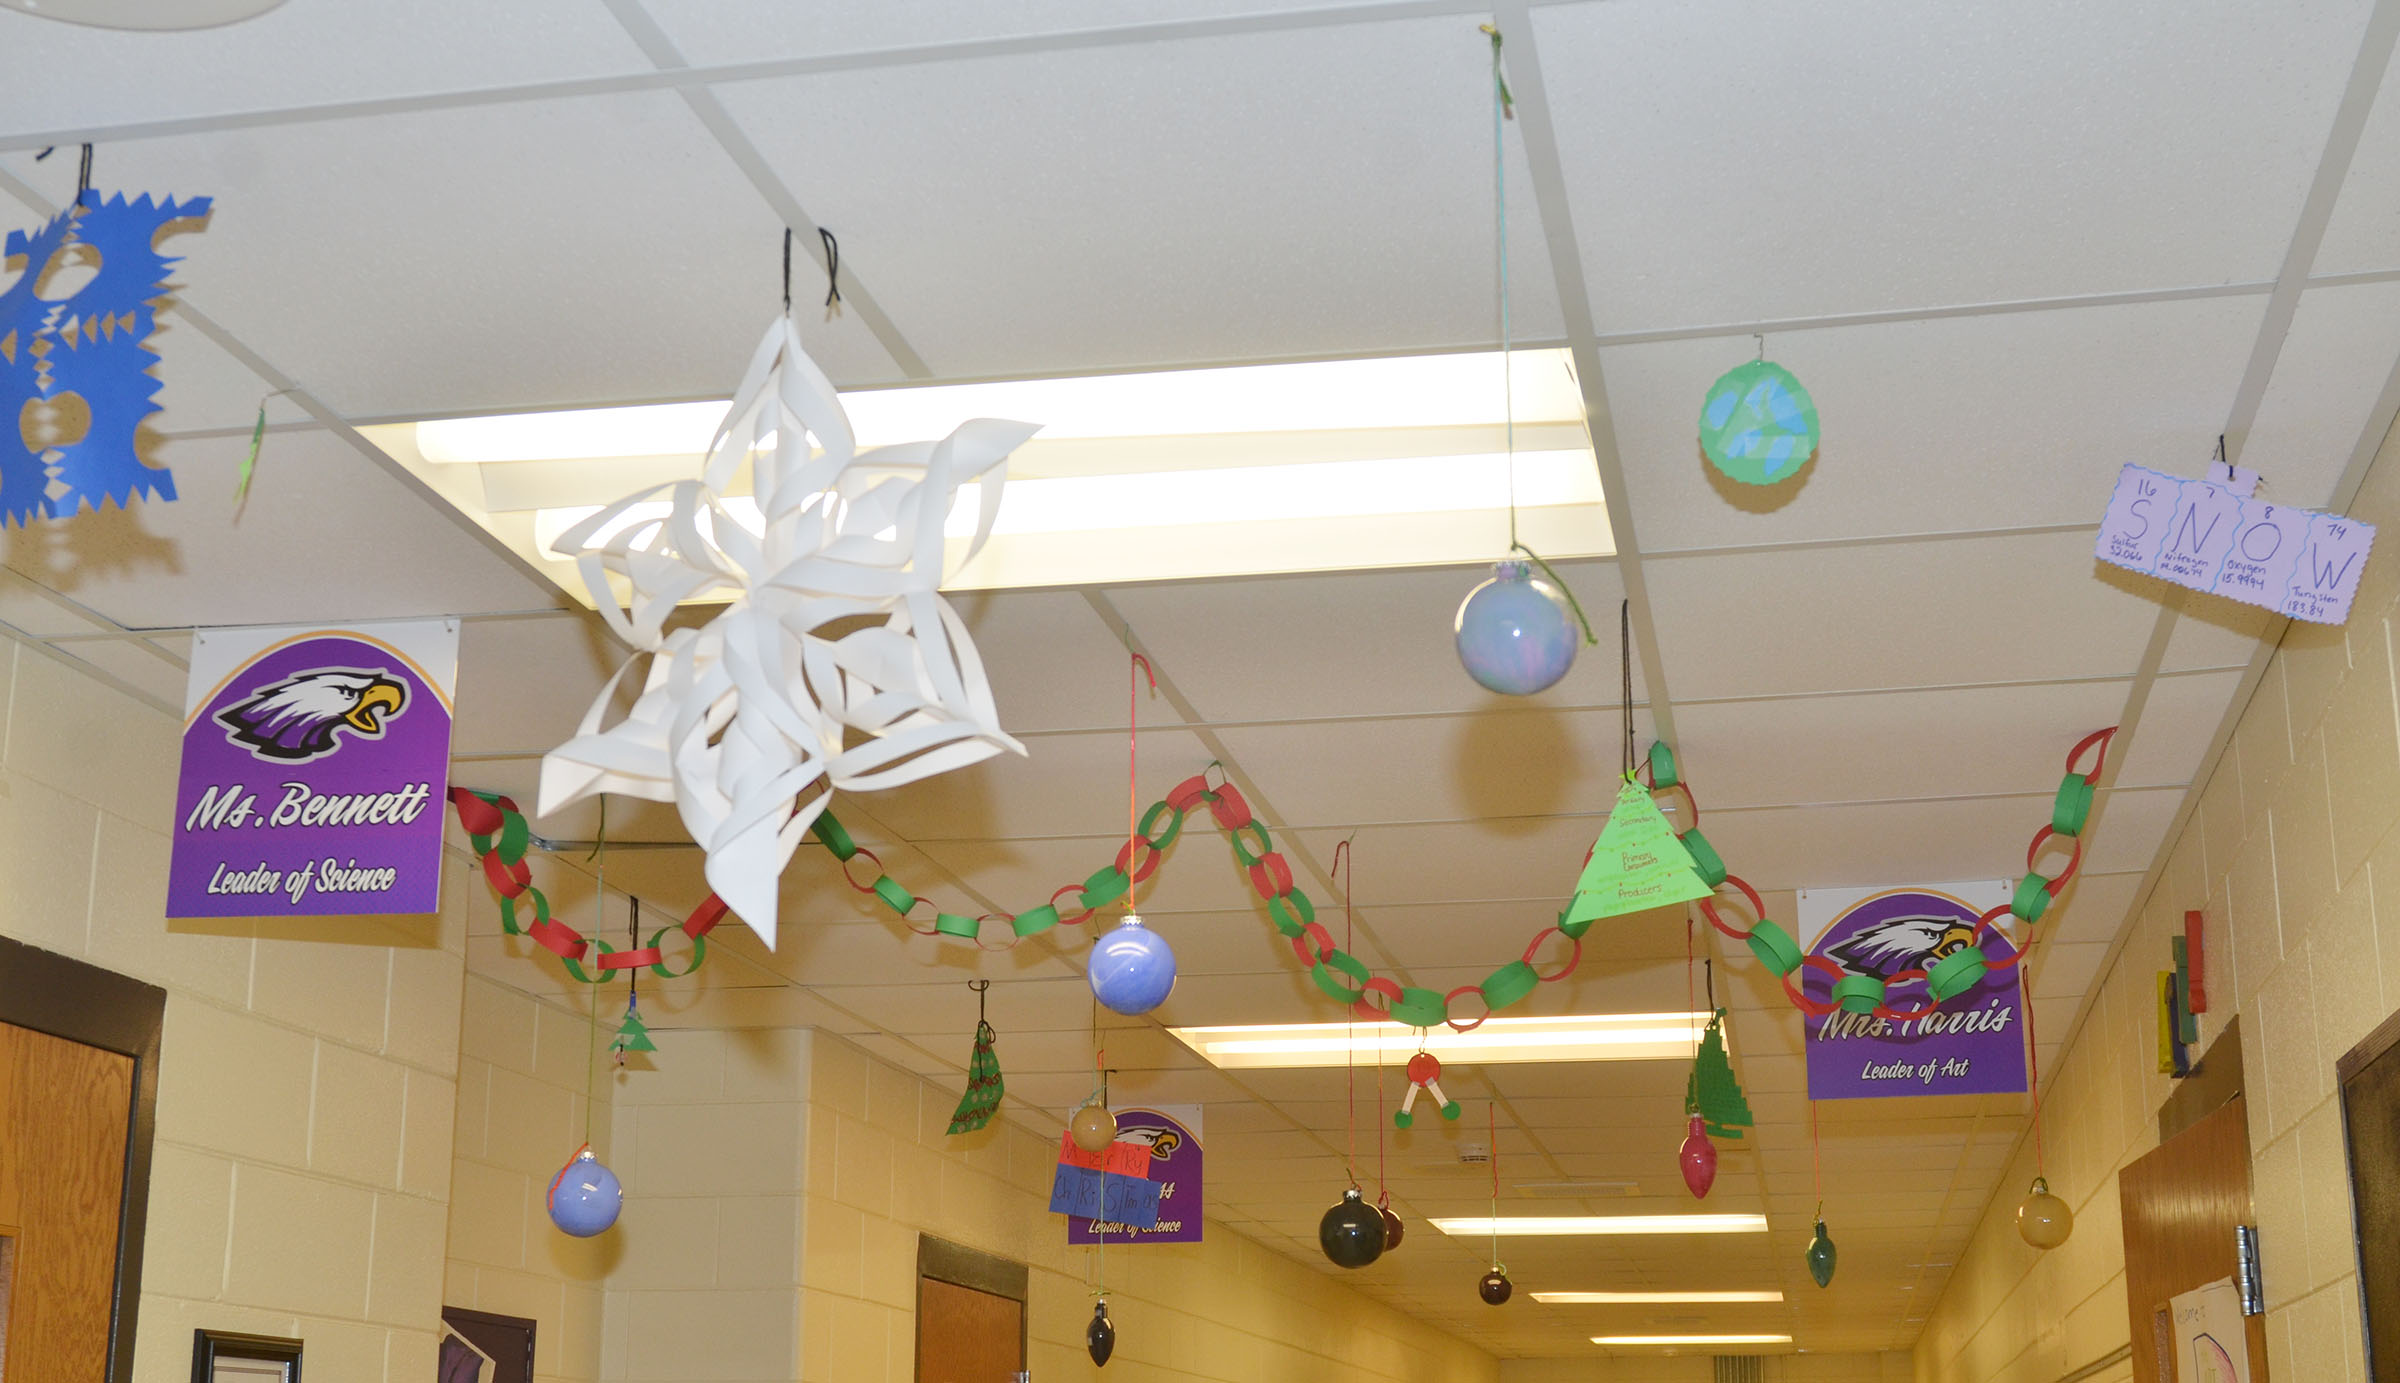 Campbellsville High School science and art students recently decorated the school hallway to give it some Christmas cheer.